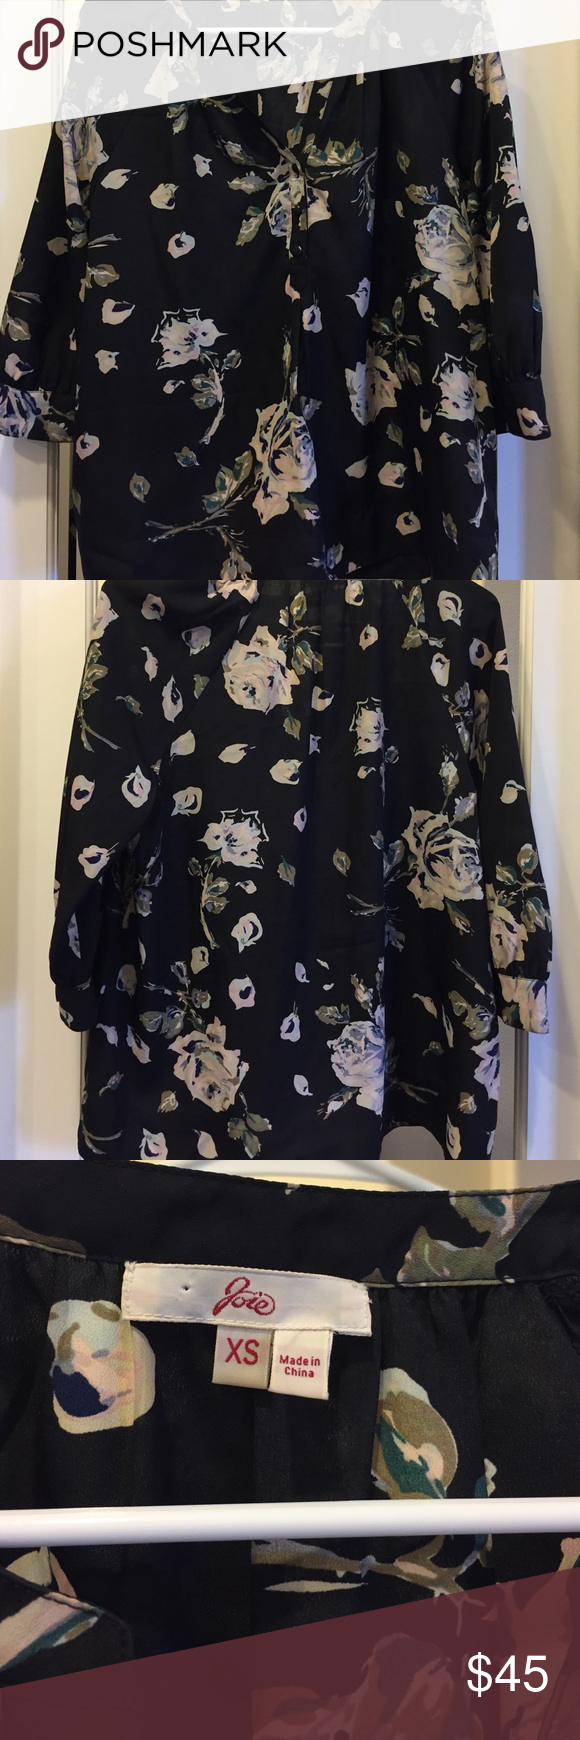 Joie floral blouse XS Beautiful floral print silk blouse from Joie. Joie Tops Blouses